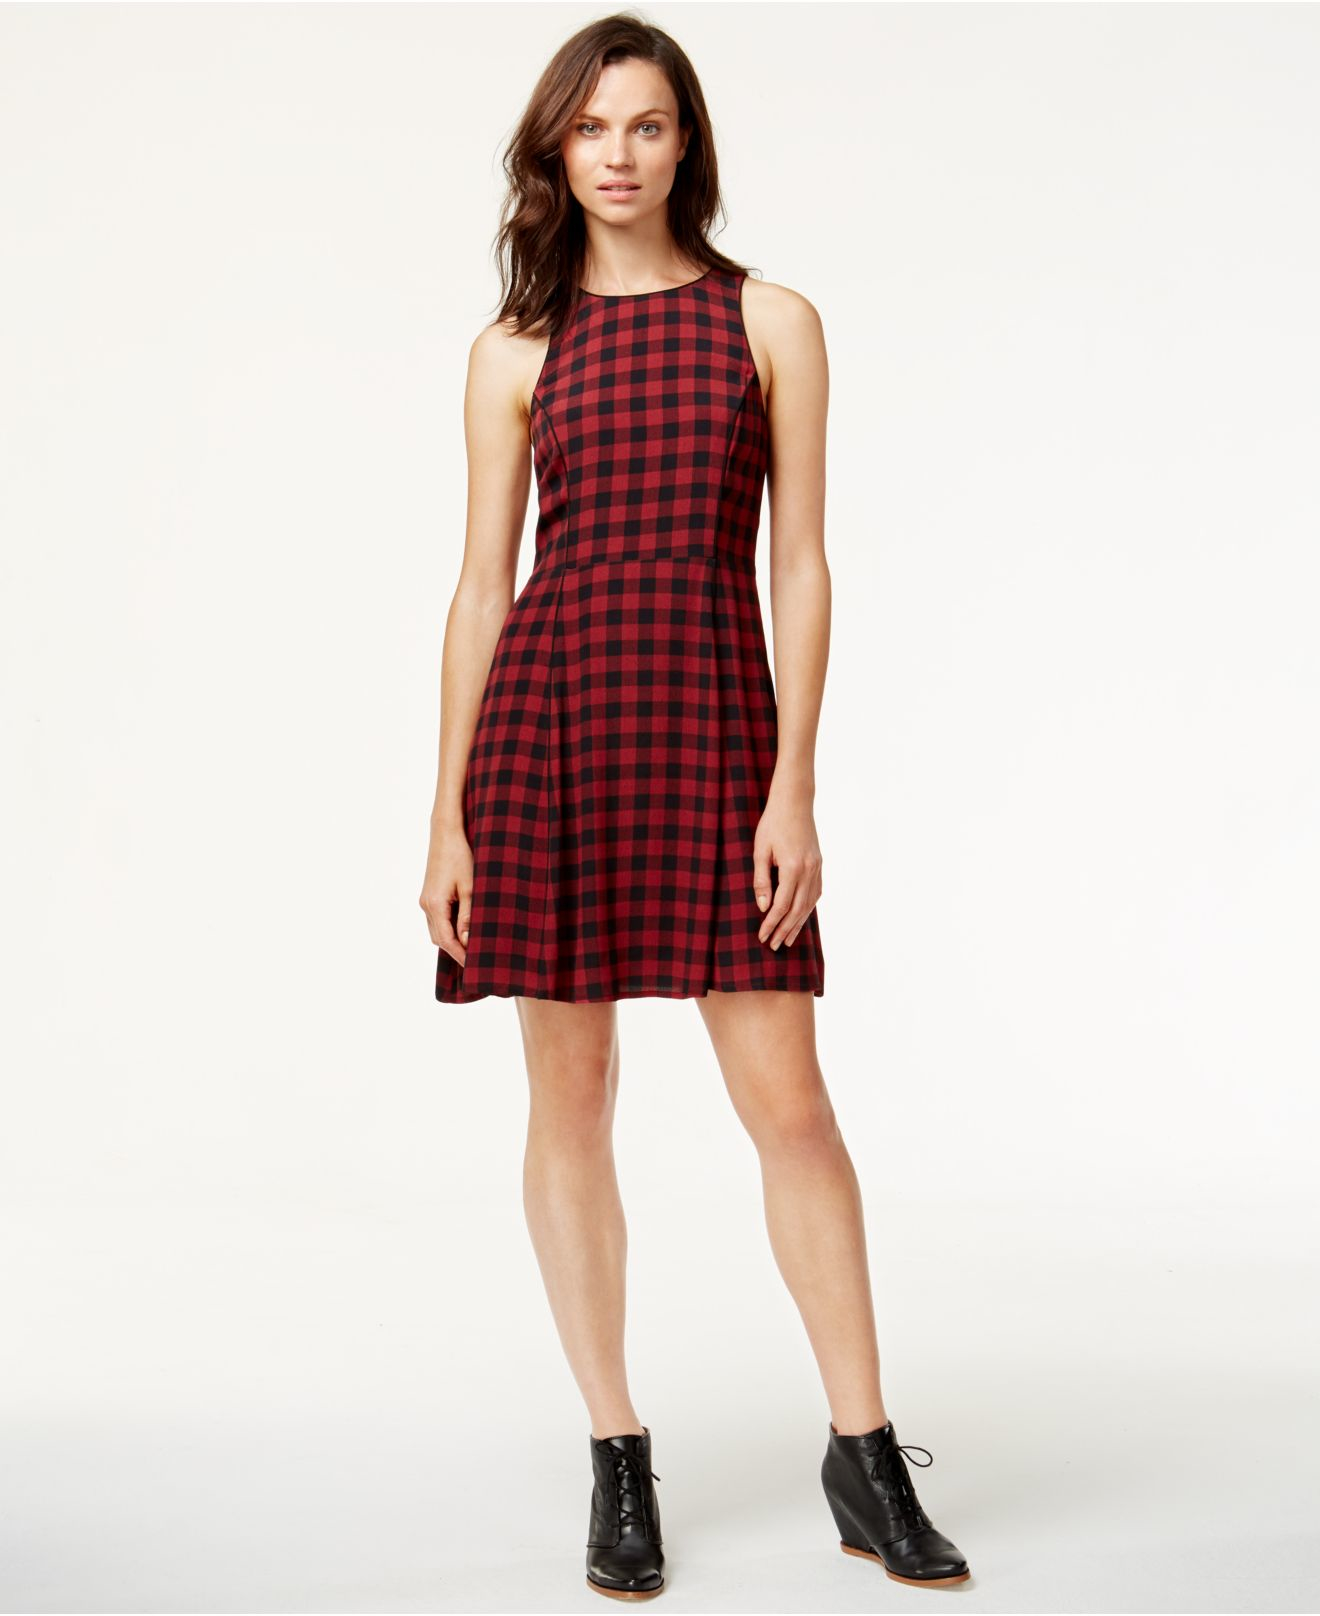 Find great deals on eBay for tartan dress. Shop with confidence. Skip to main content. eBay: Shop by category. Shop by category. Enter your search keyword $ Pink Tartan Sleeveless textured midi flare dress size 2. New (Other) · Pink Tartan · Size (Women's) $ or Best Offer.